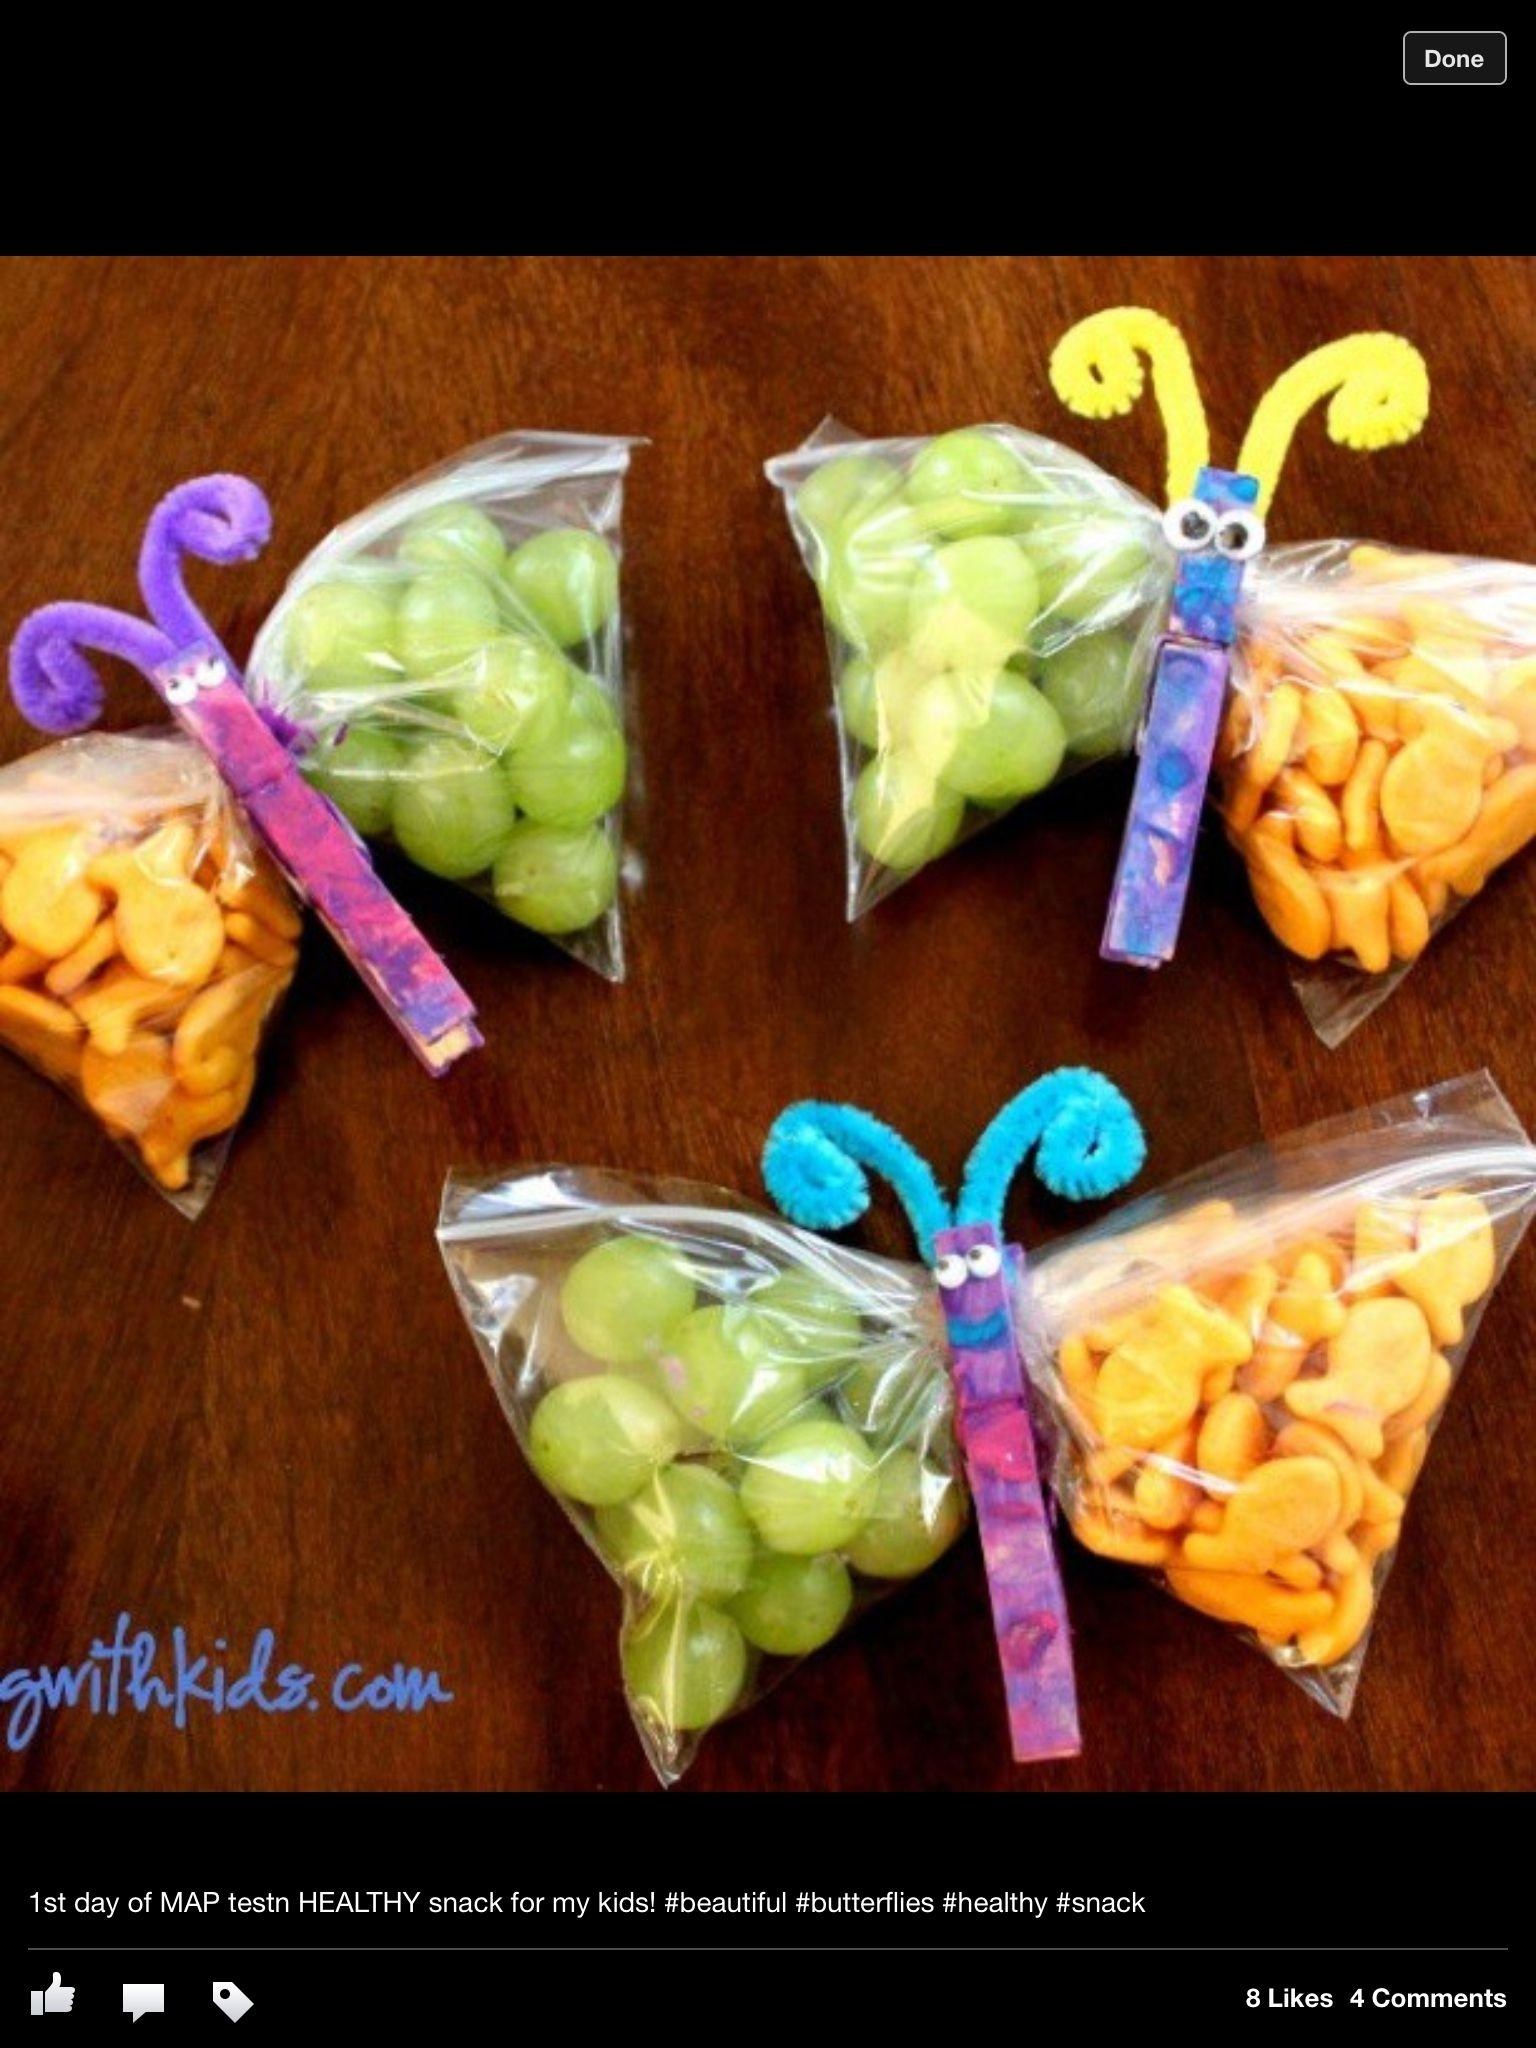 10 Fantastic School Snack Ideas For Kids 19 easy and adorable animal snacks to make with kids snacks 2020